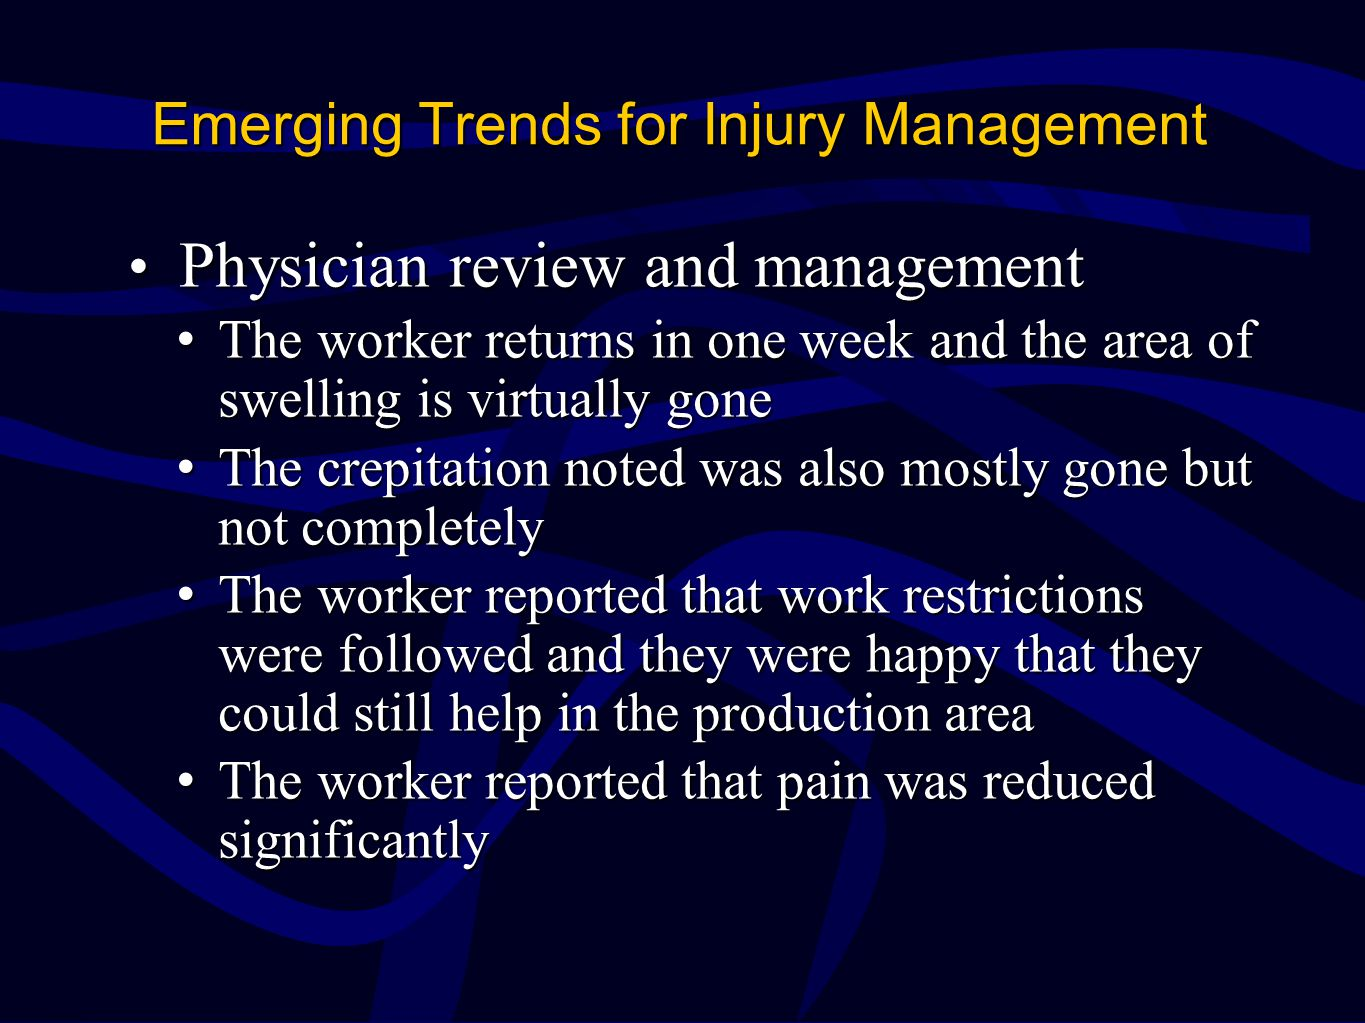 Emerging Trends for Injury Management Physician review and management Physician review and management The worker returns in one week and the area of swelling is virtually goneThe worker returns in one week and the area of swelling is virtually gone The crepitation noted was also mostly gone but not completelyThe crepitation noted was also mostly gone but not completely The worker reported that work restrictions were followed and they were happy that they could still help in the production areaThe worker reported that work restrictions were followed and they were happy that they could still help in the production area The worker reported that pain was reduced significantlyThe worker reported that pain was reduced significantly